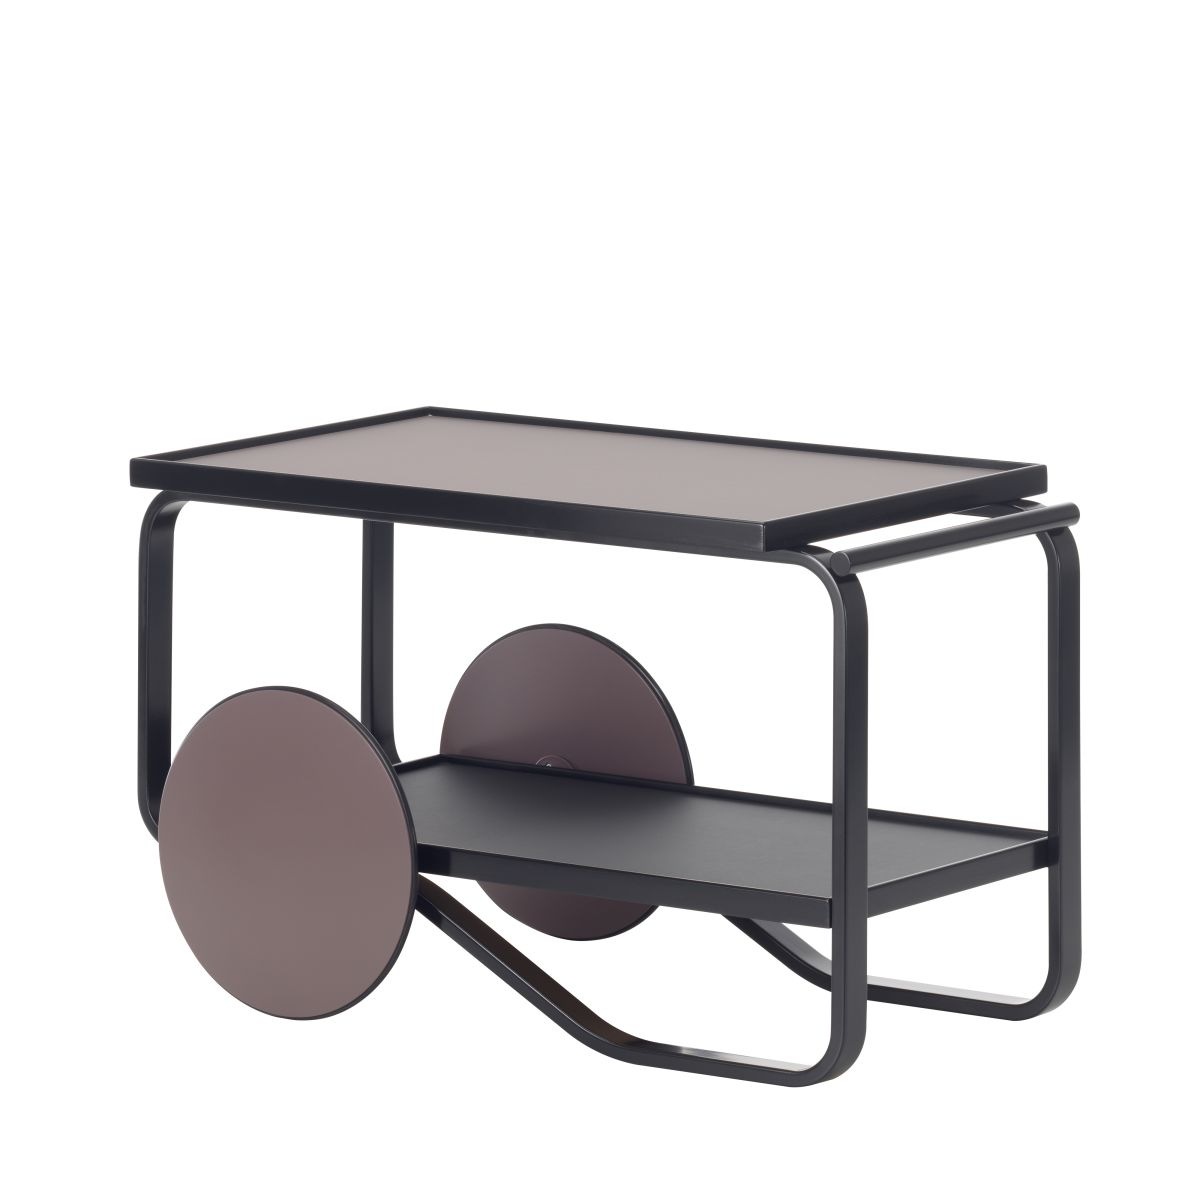 Tea-Trolley-901-Black-Laquered-Dark-Version-By-Hella-Jongerius